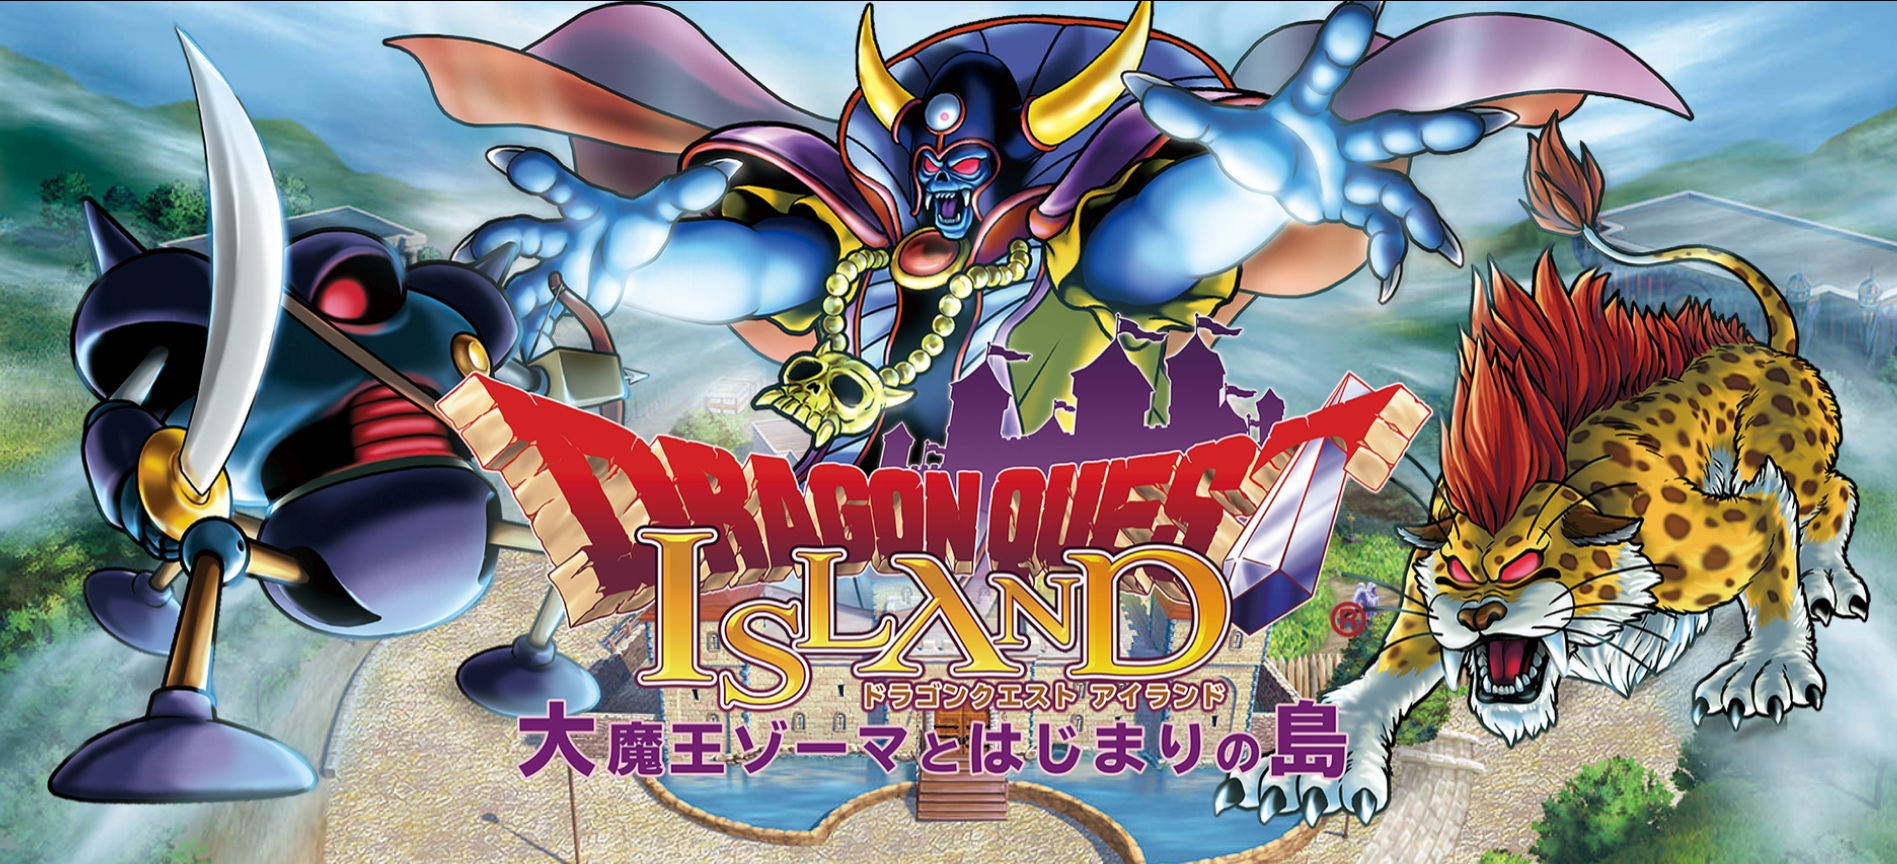 Dragon Quest Island Outdoor Adventure Opens In Japan In Spring 2021